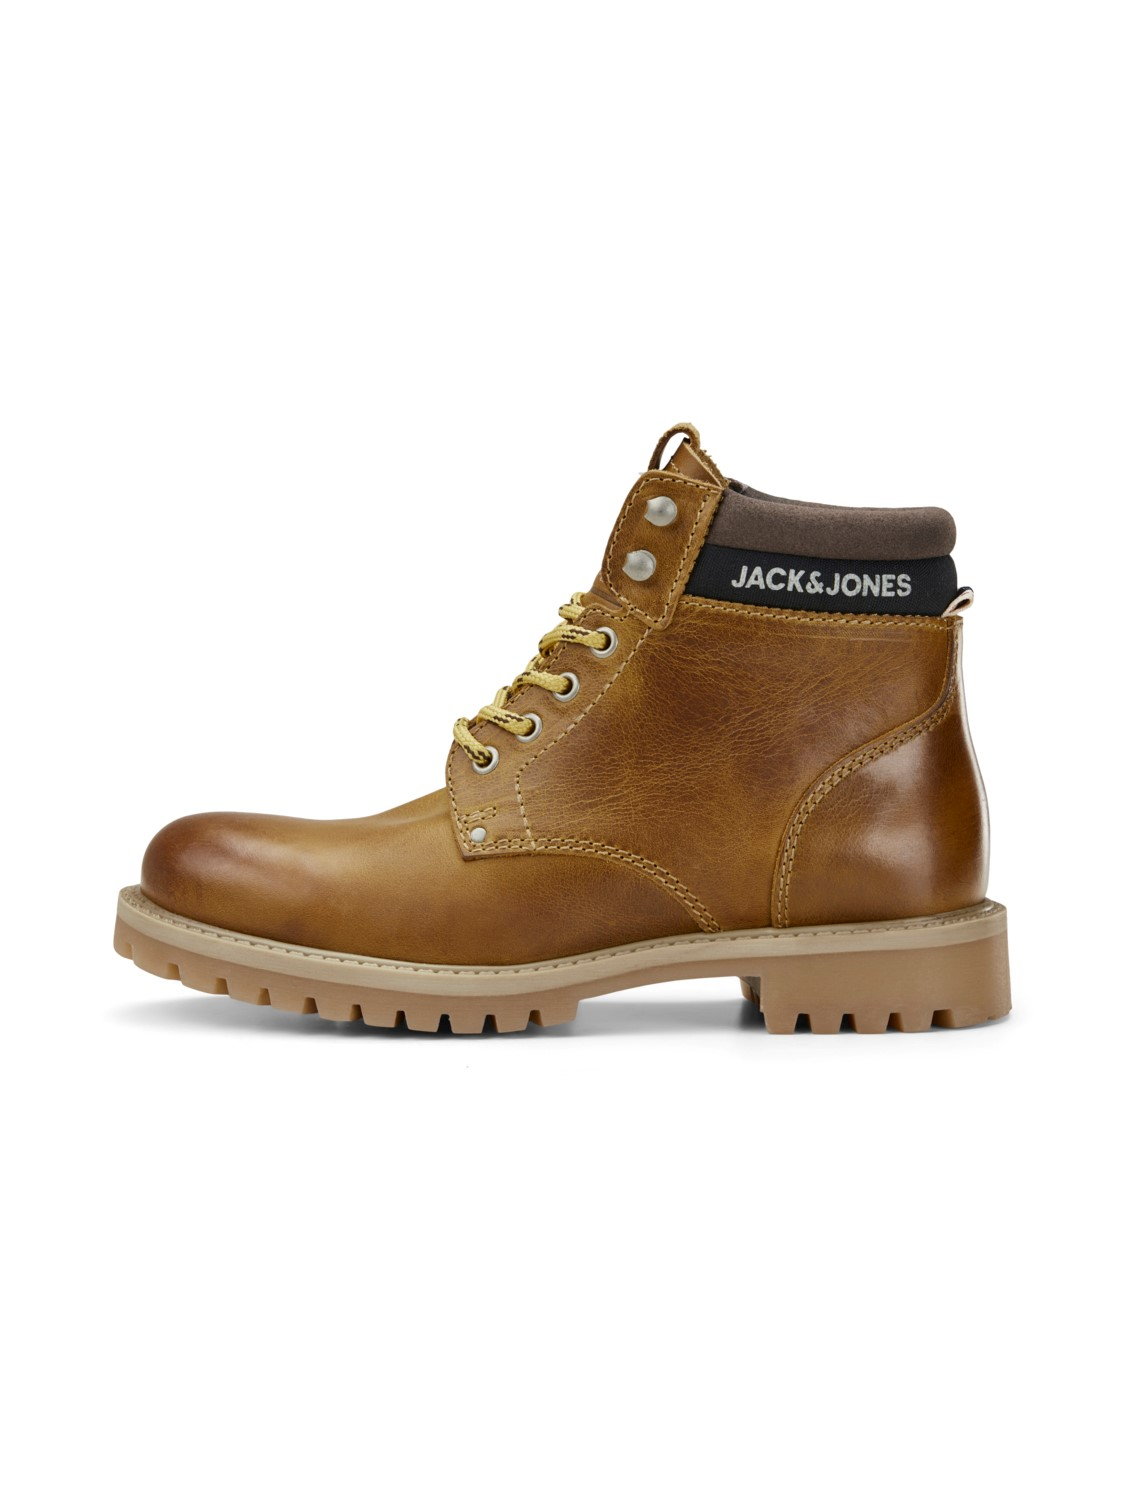 JACK & JONES JRSTATTON LEATHER HONEY JR